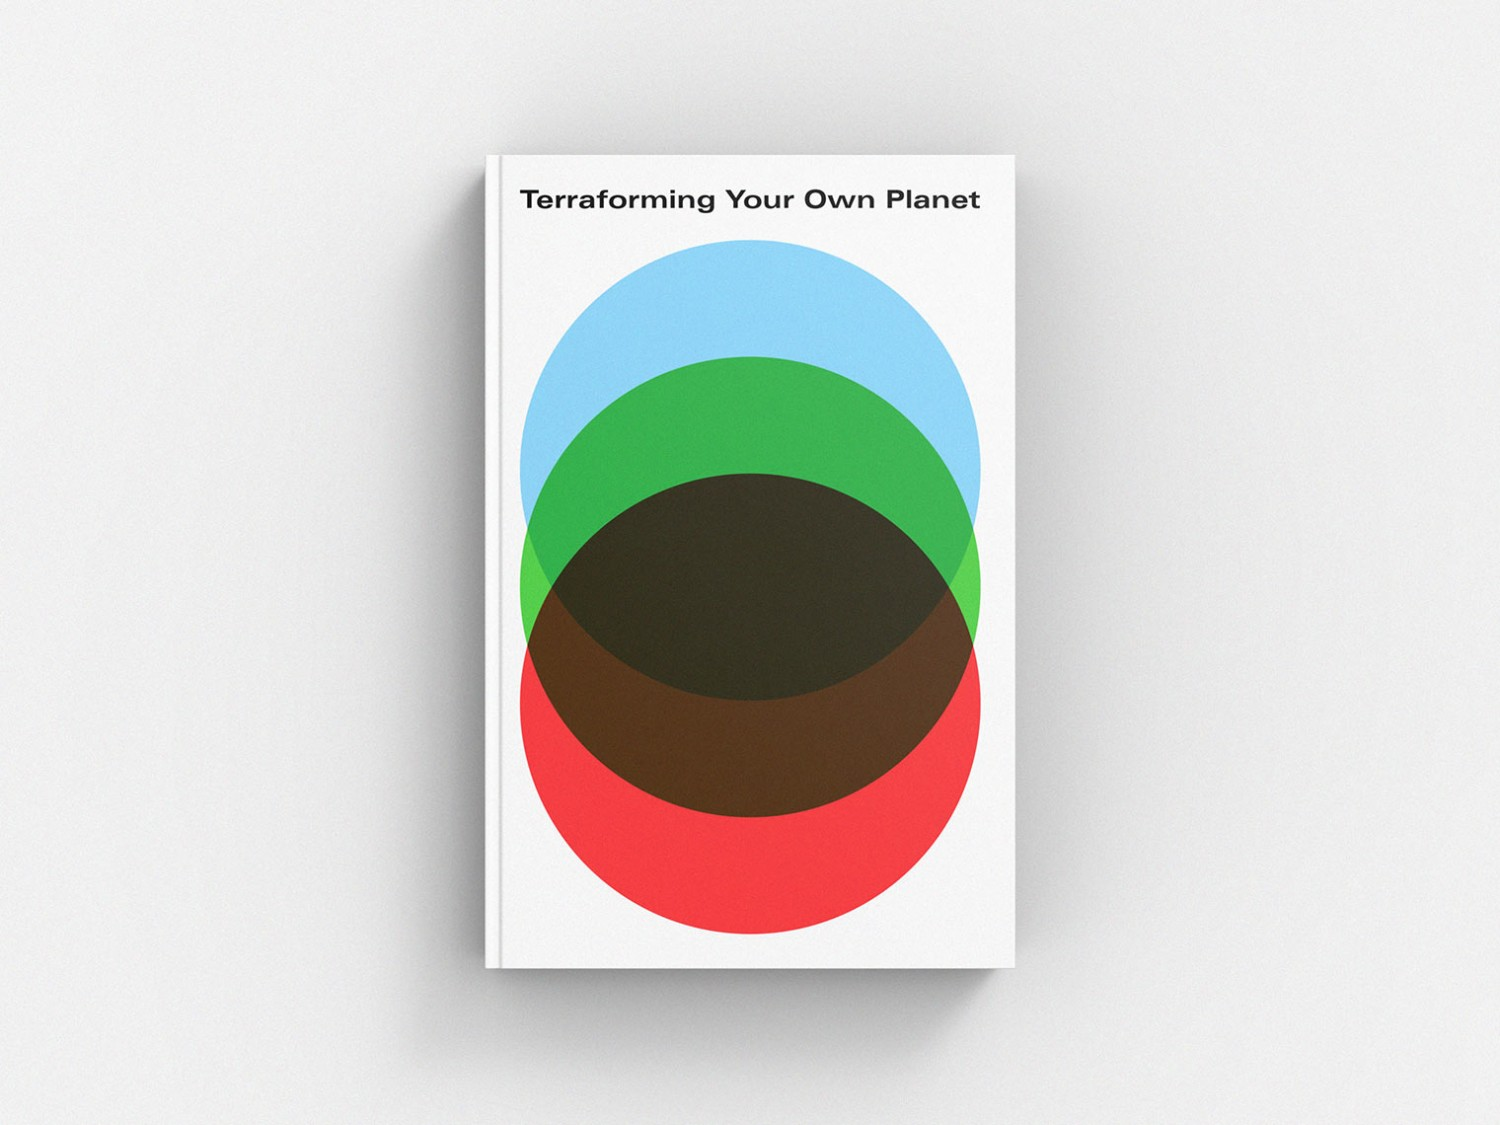 Terraforming Your Own planet